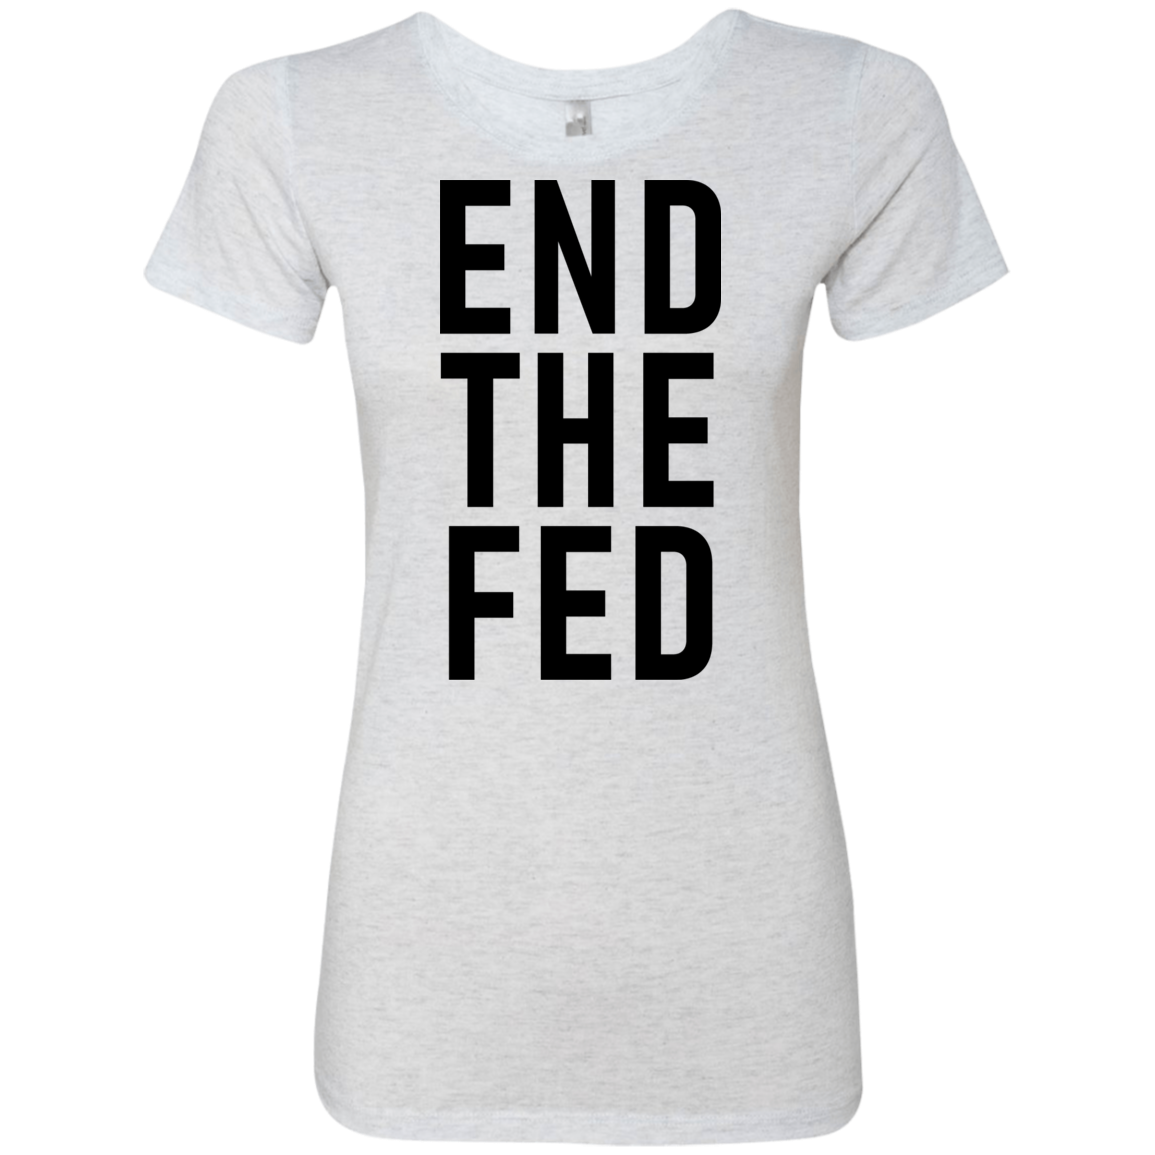 The End Fed Women's Classic Tee